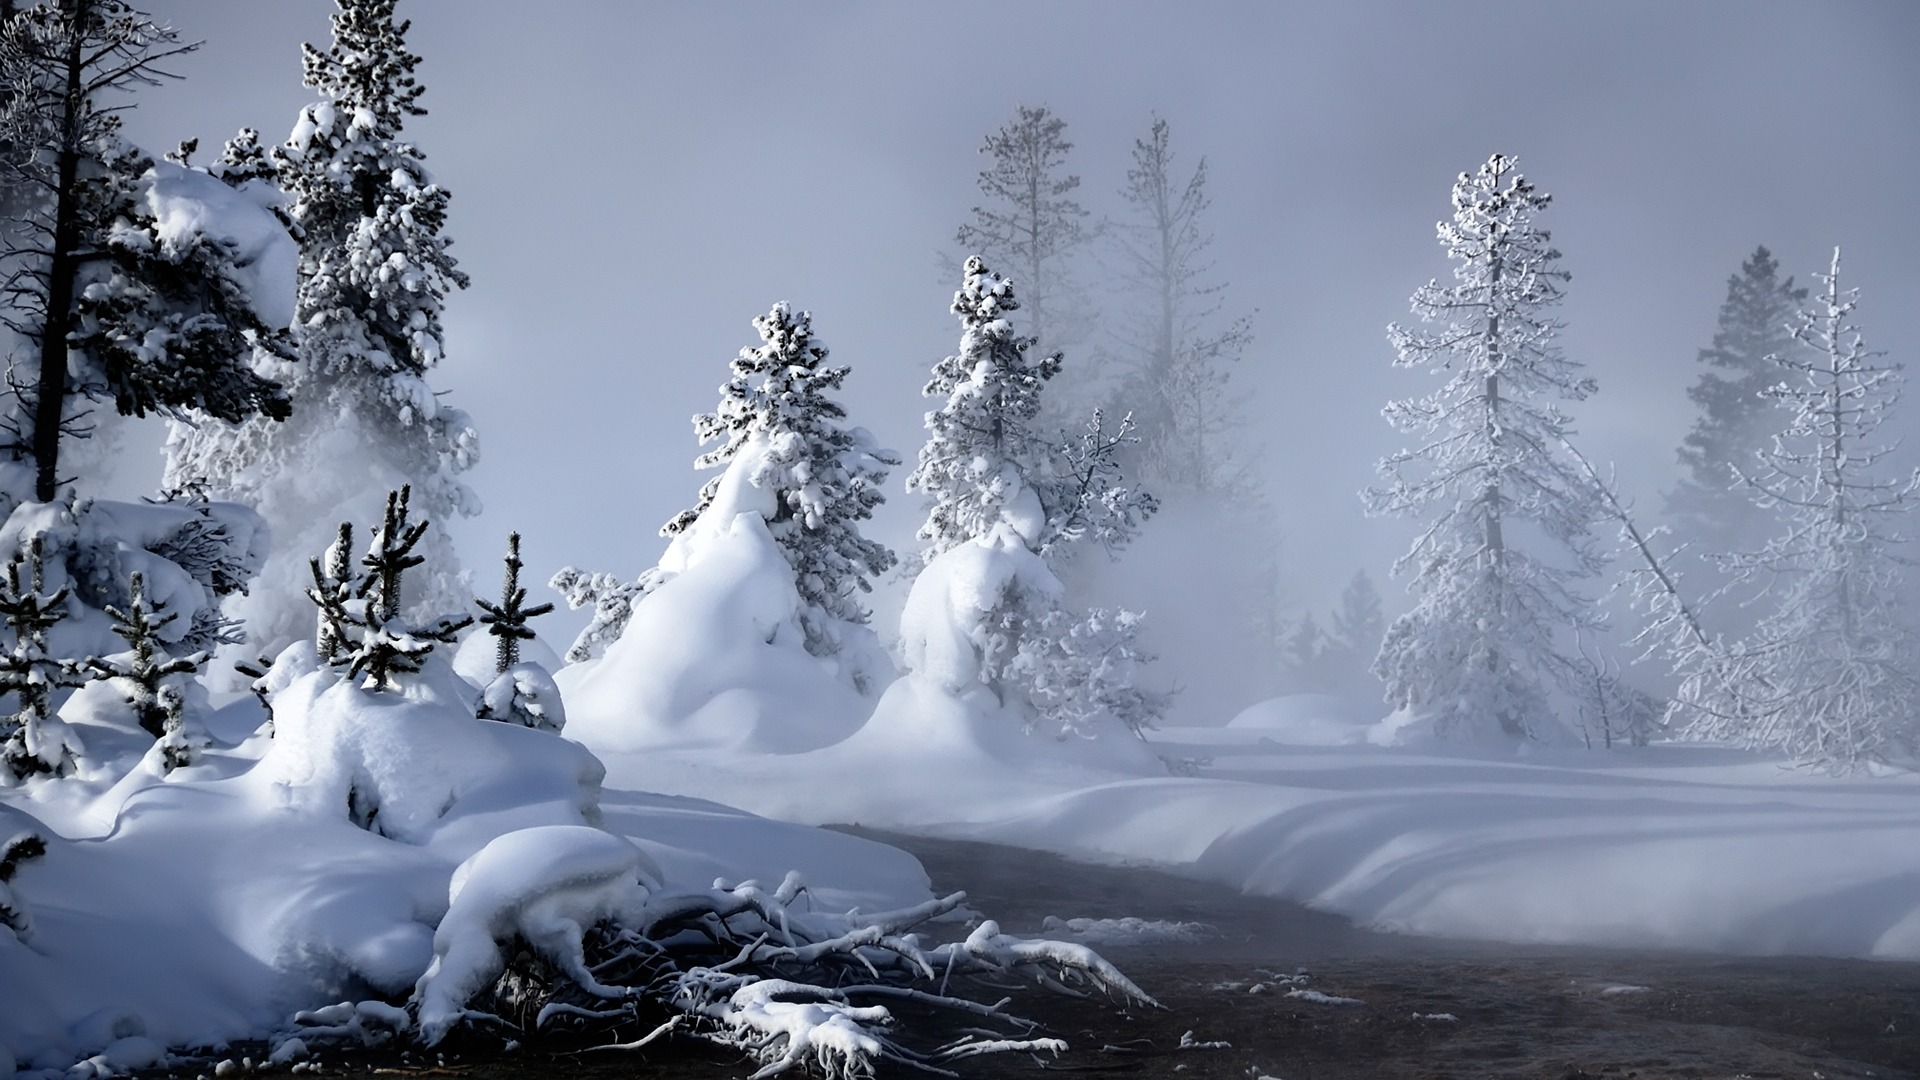 Winter Scenes Wallpaper The Galleries of HD Wallpaper 1920x1080